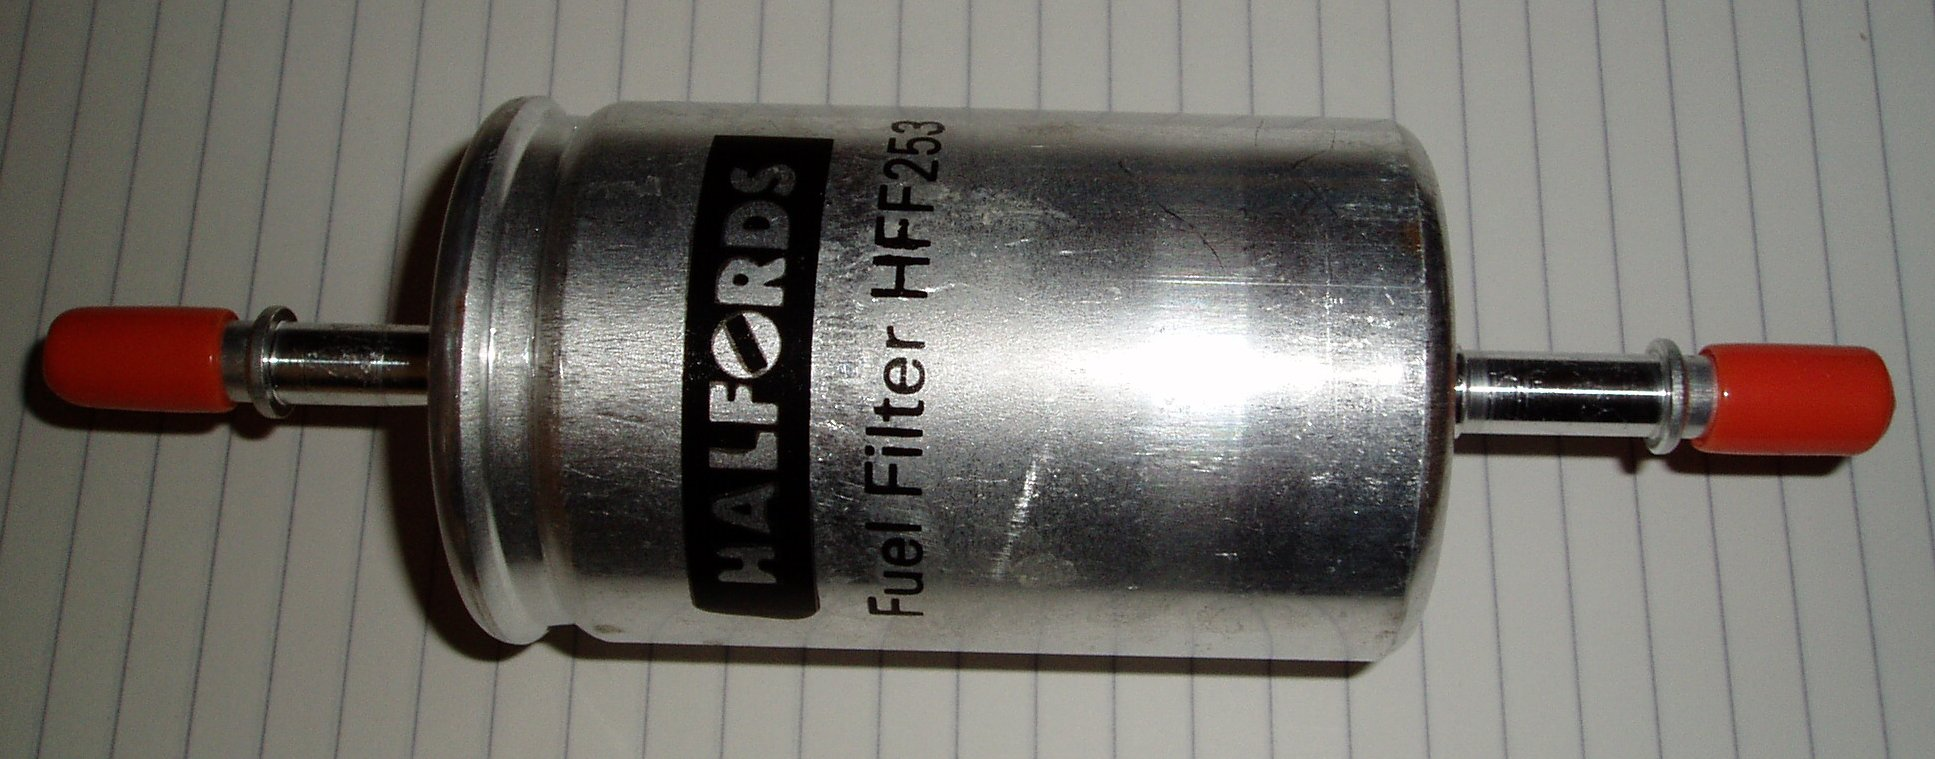 hight resolution of pictures of fuel filter